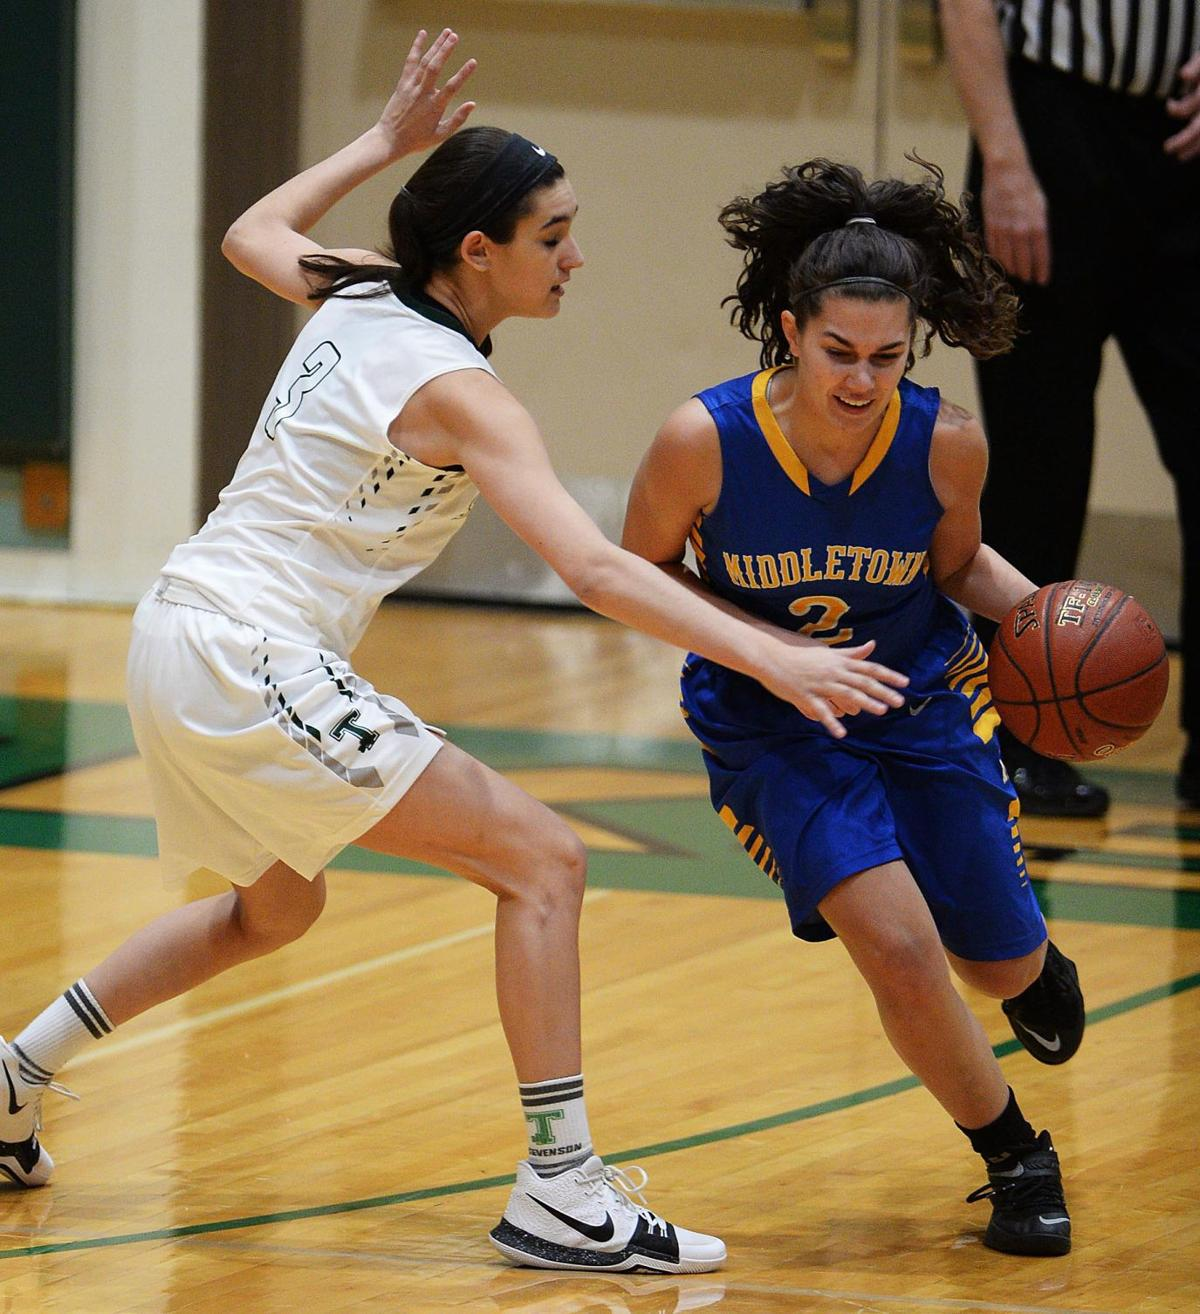 Girls Basketball: Middletown at Trinity (copy)